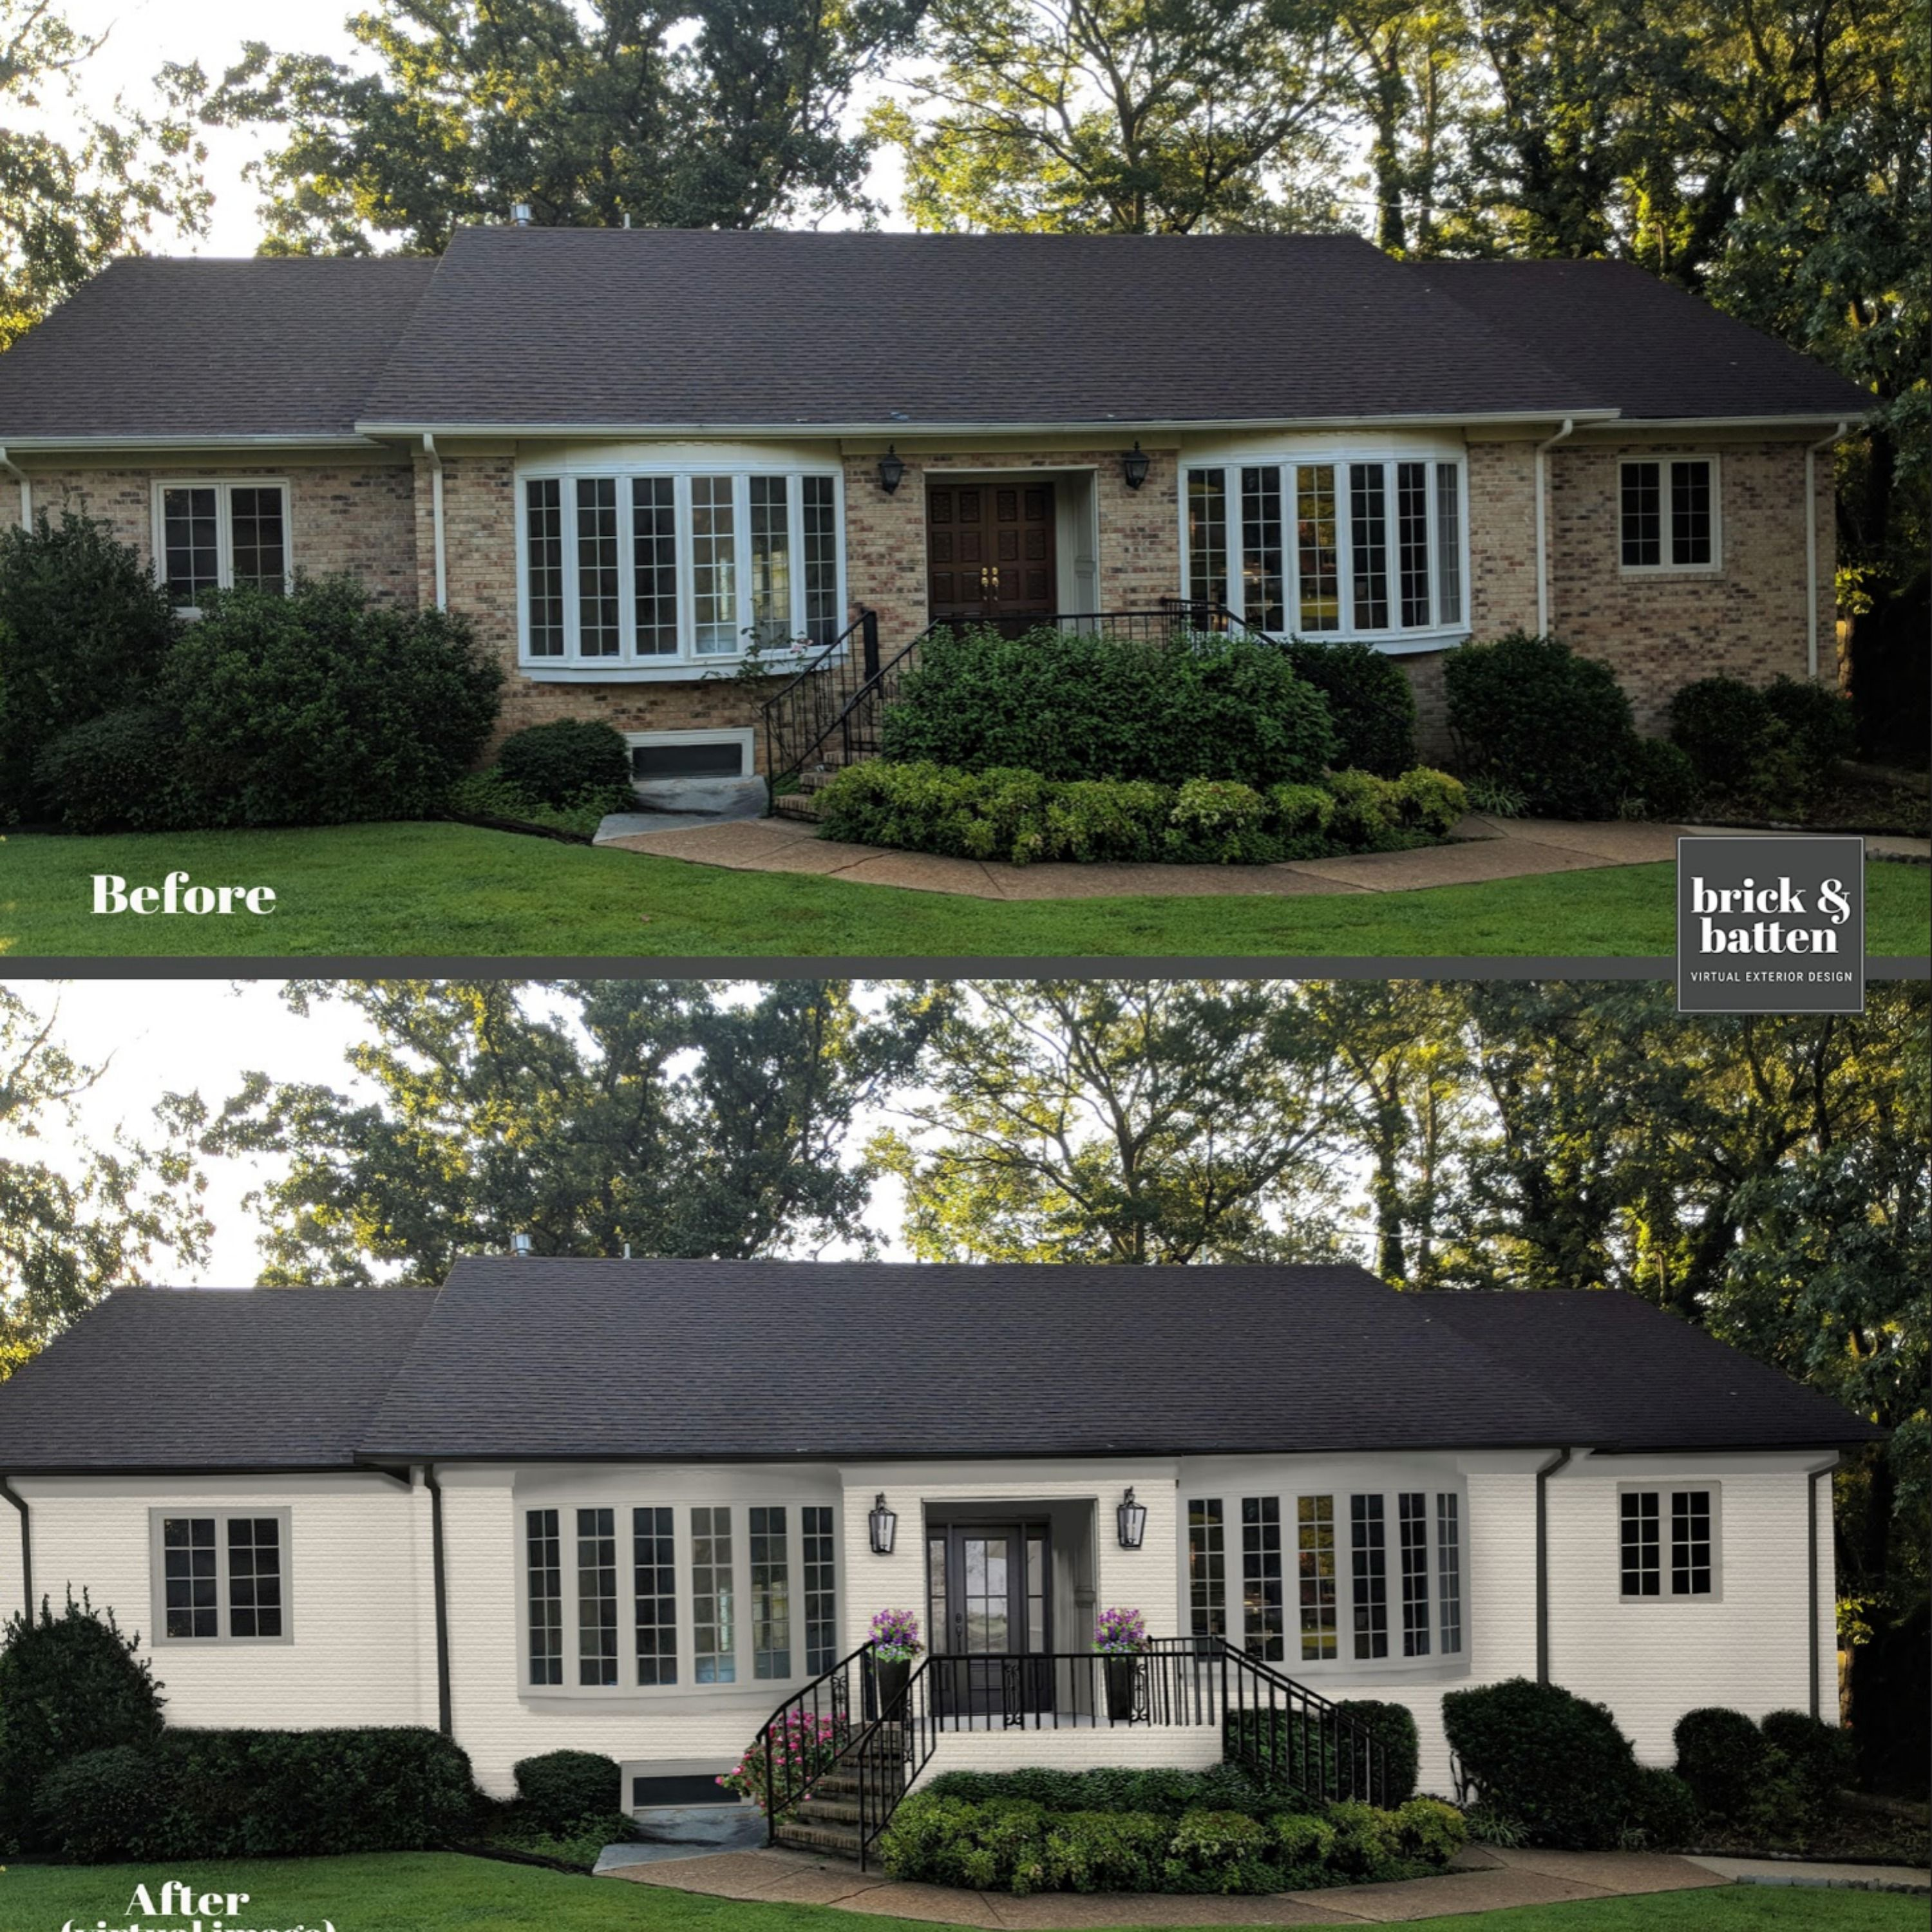 Ranch Homes Before After Makeover Blog Brick Batten Ranch House Exterior Ranch Style Homes Brick Ranch Houses